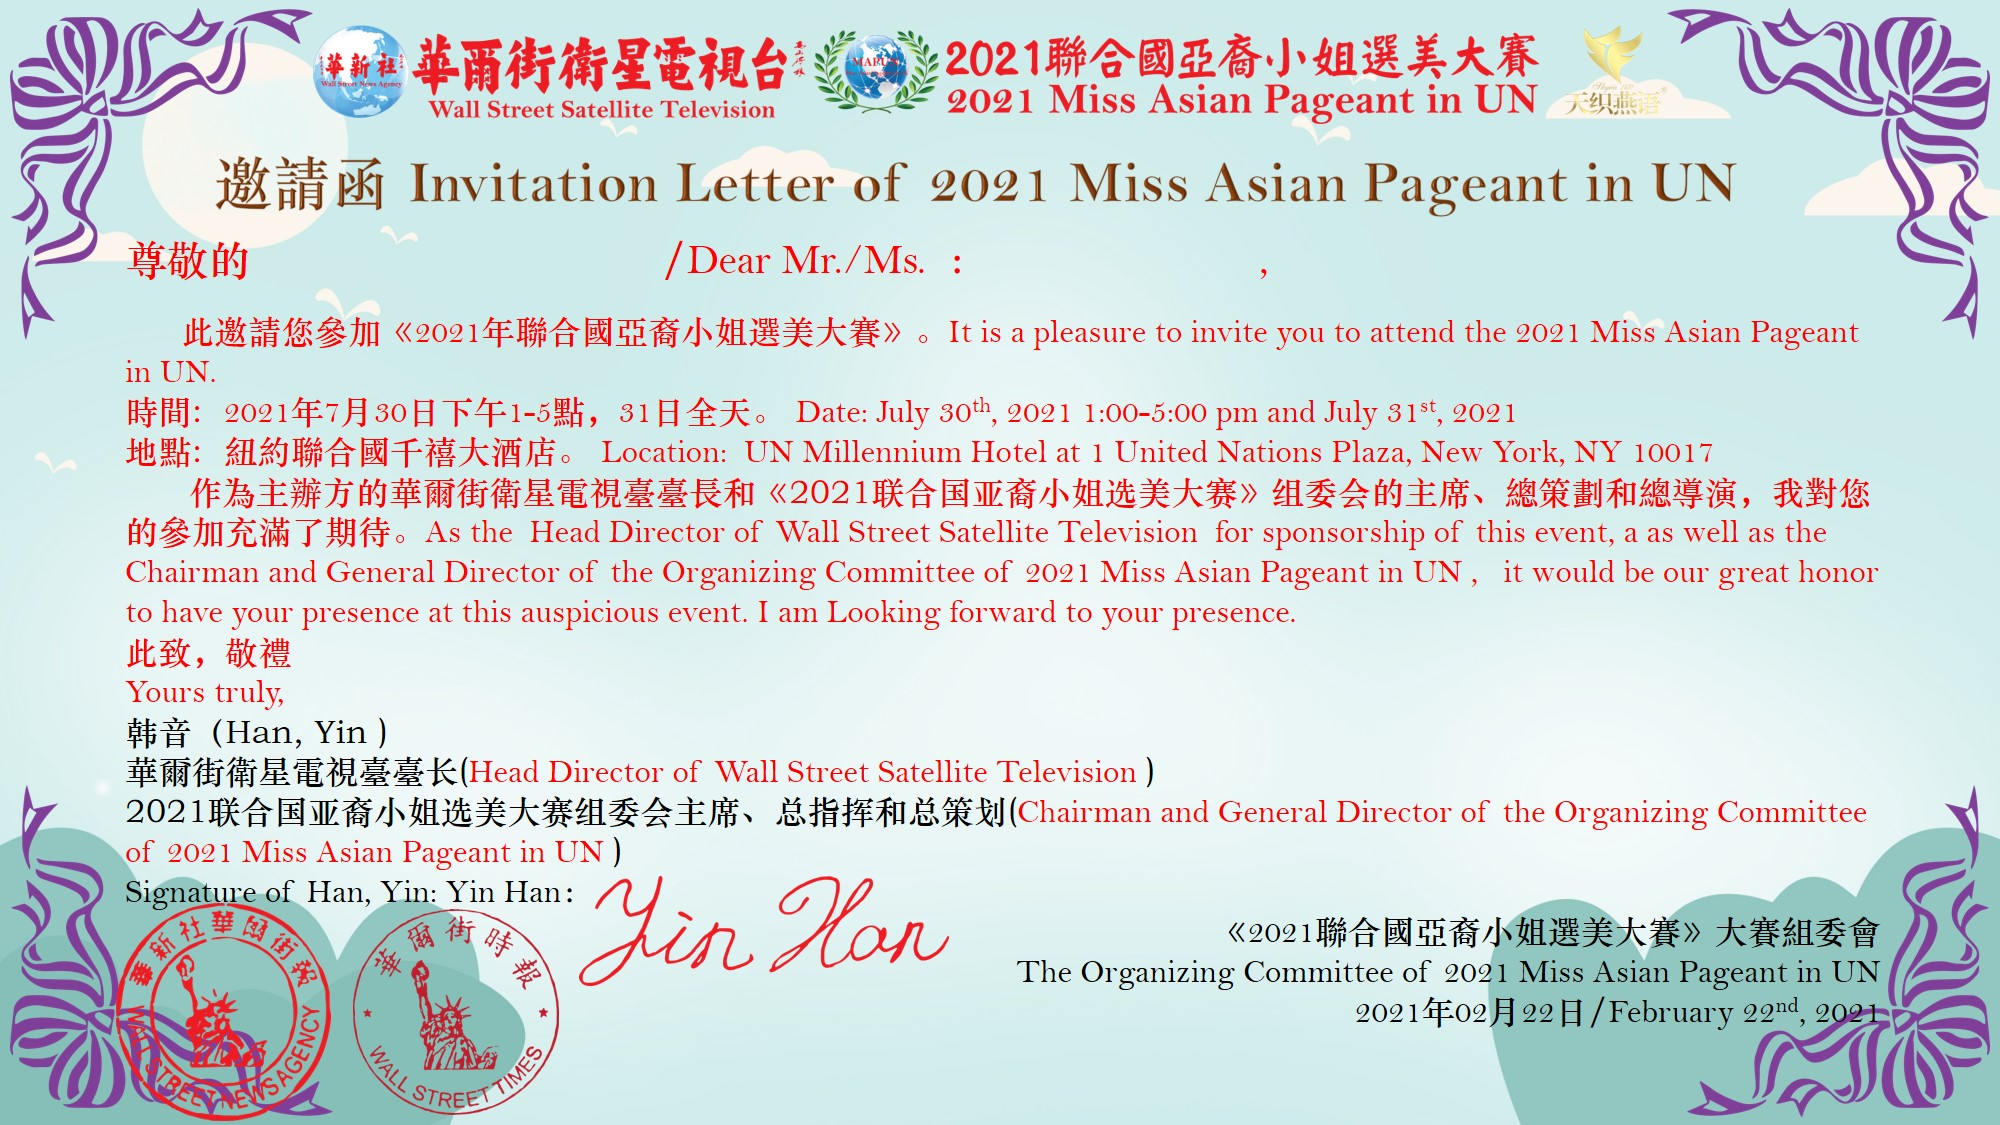 Han Yin of Invitation Letter 02